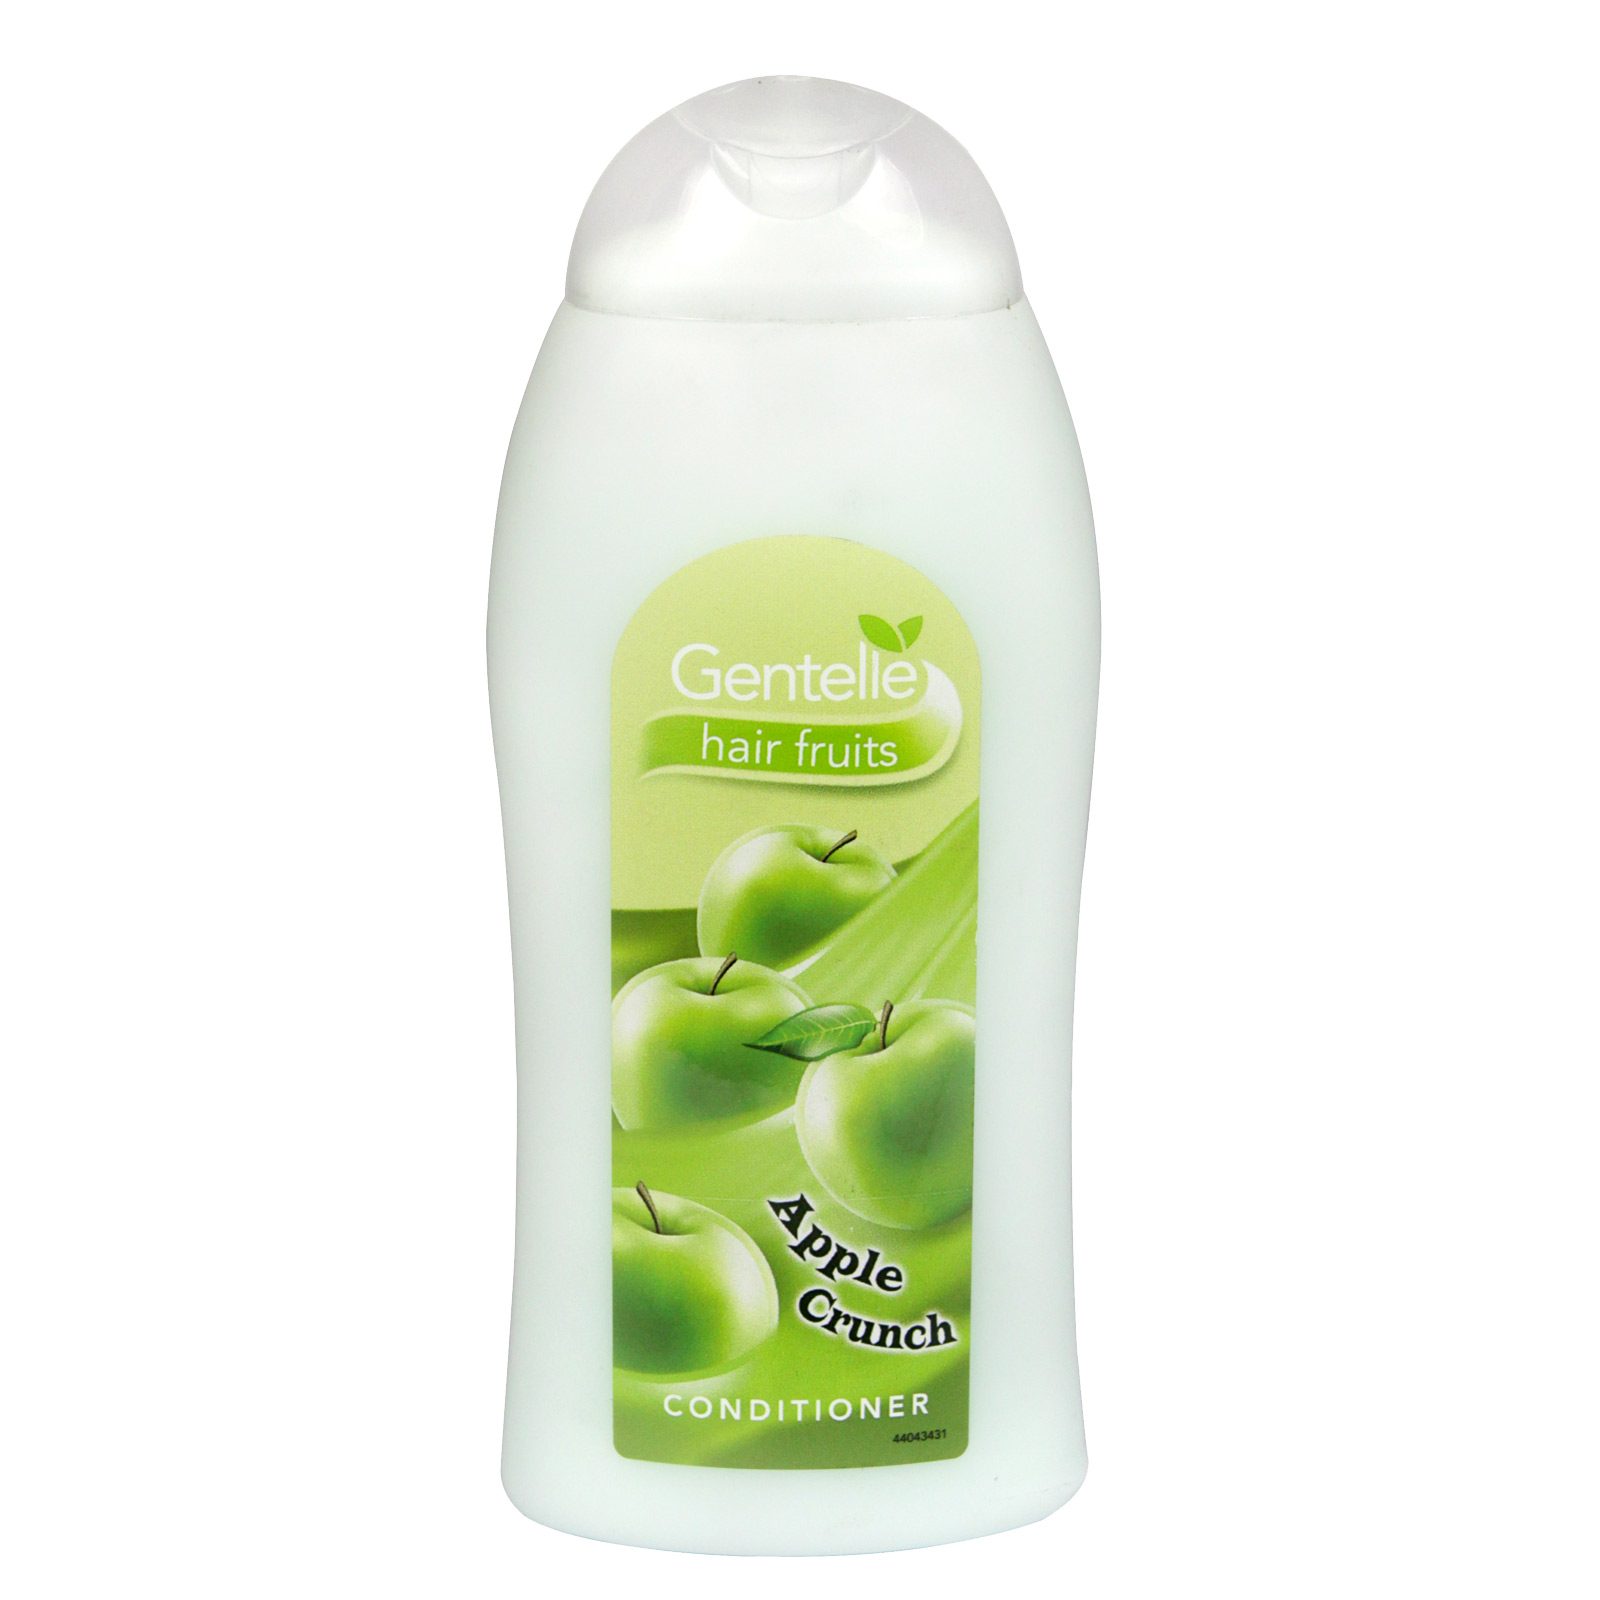 GENTELLE CONDITIONER 400ML APPLE CRUNCH X12